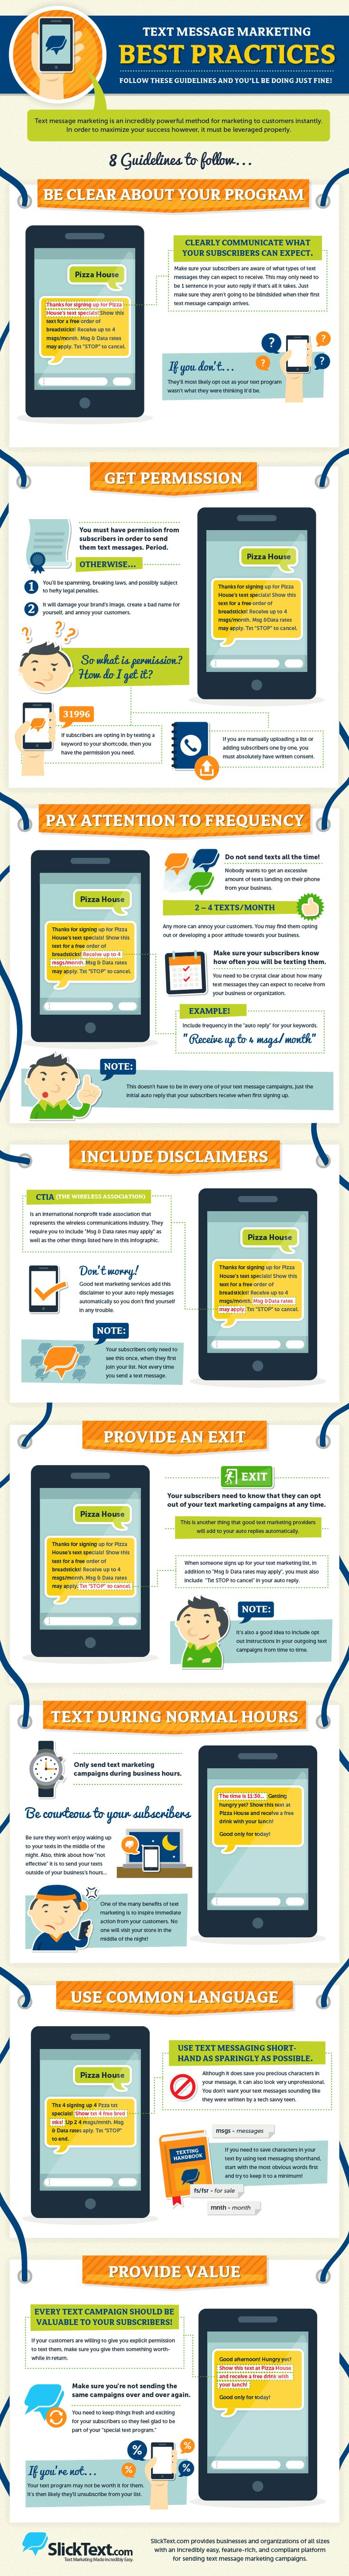 How to Add Text Messaging to Your Marketing Campaign (Infographic) | Inc.com